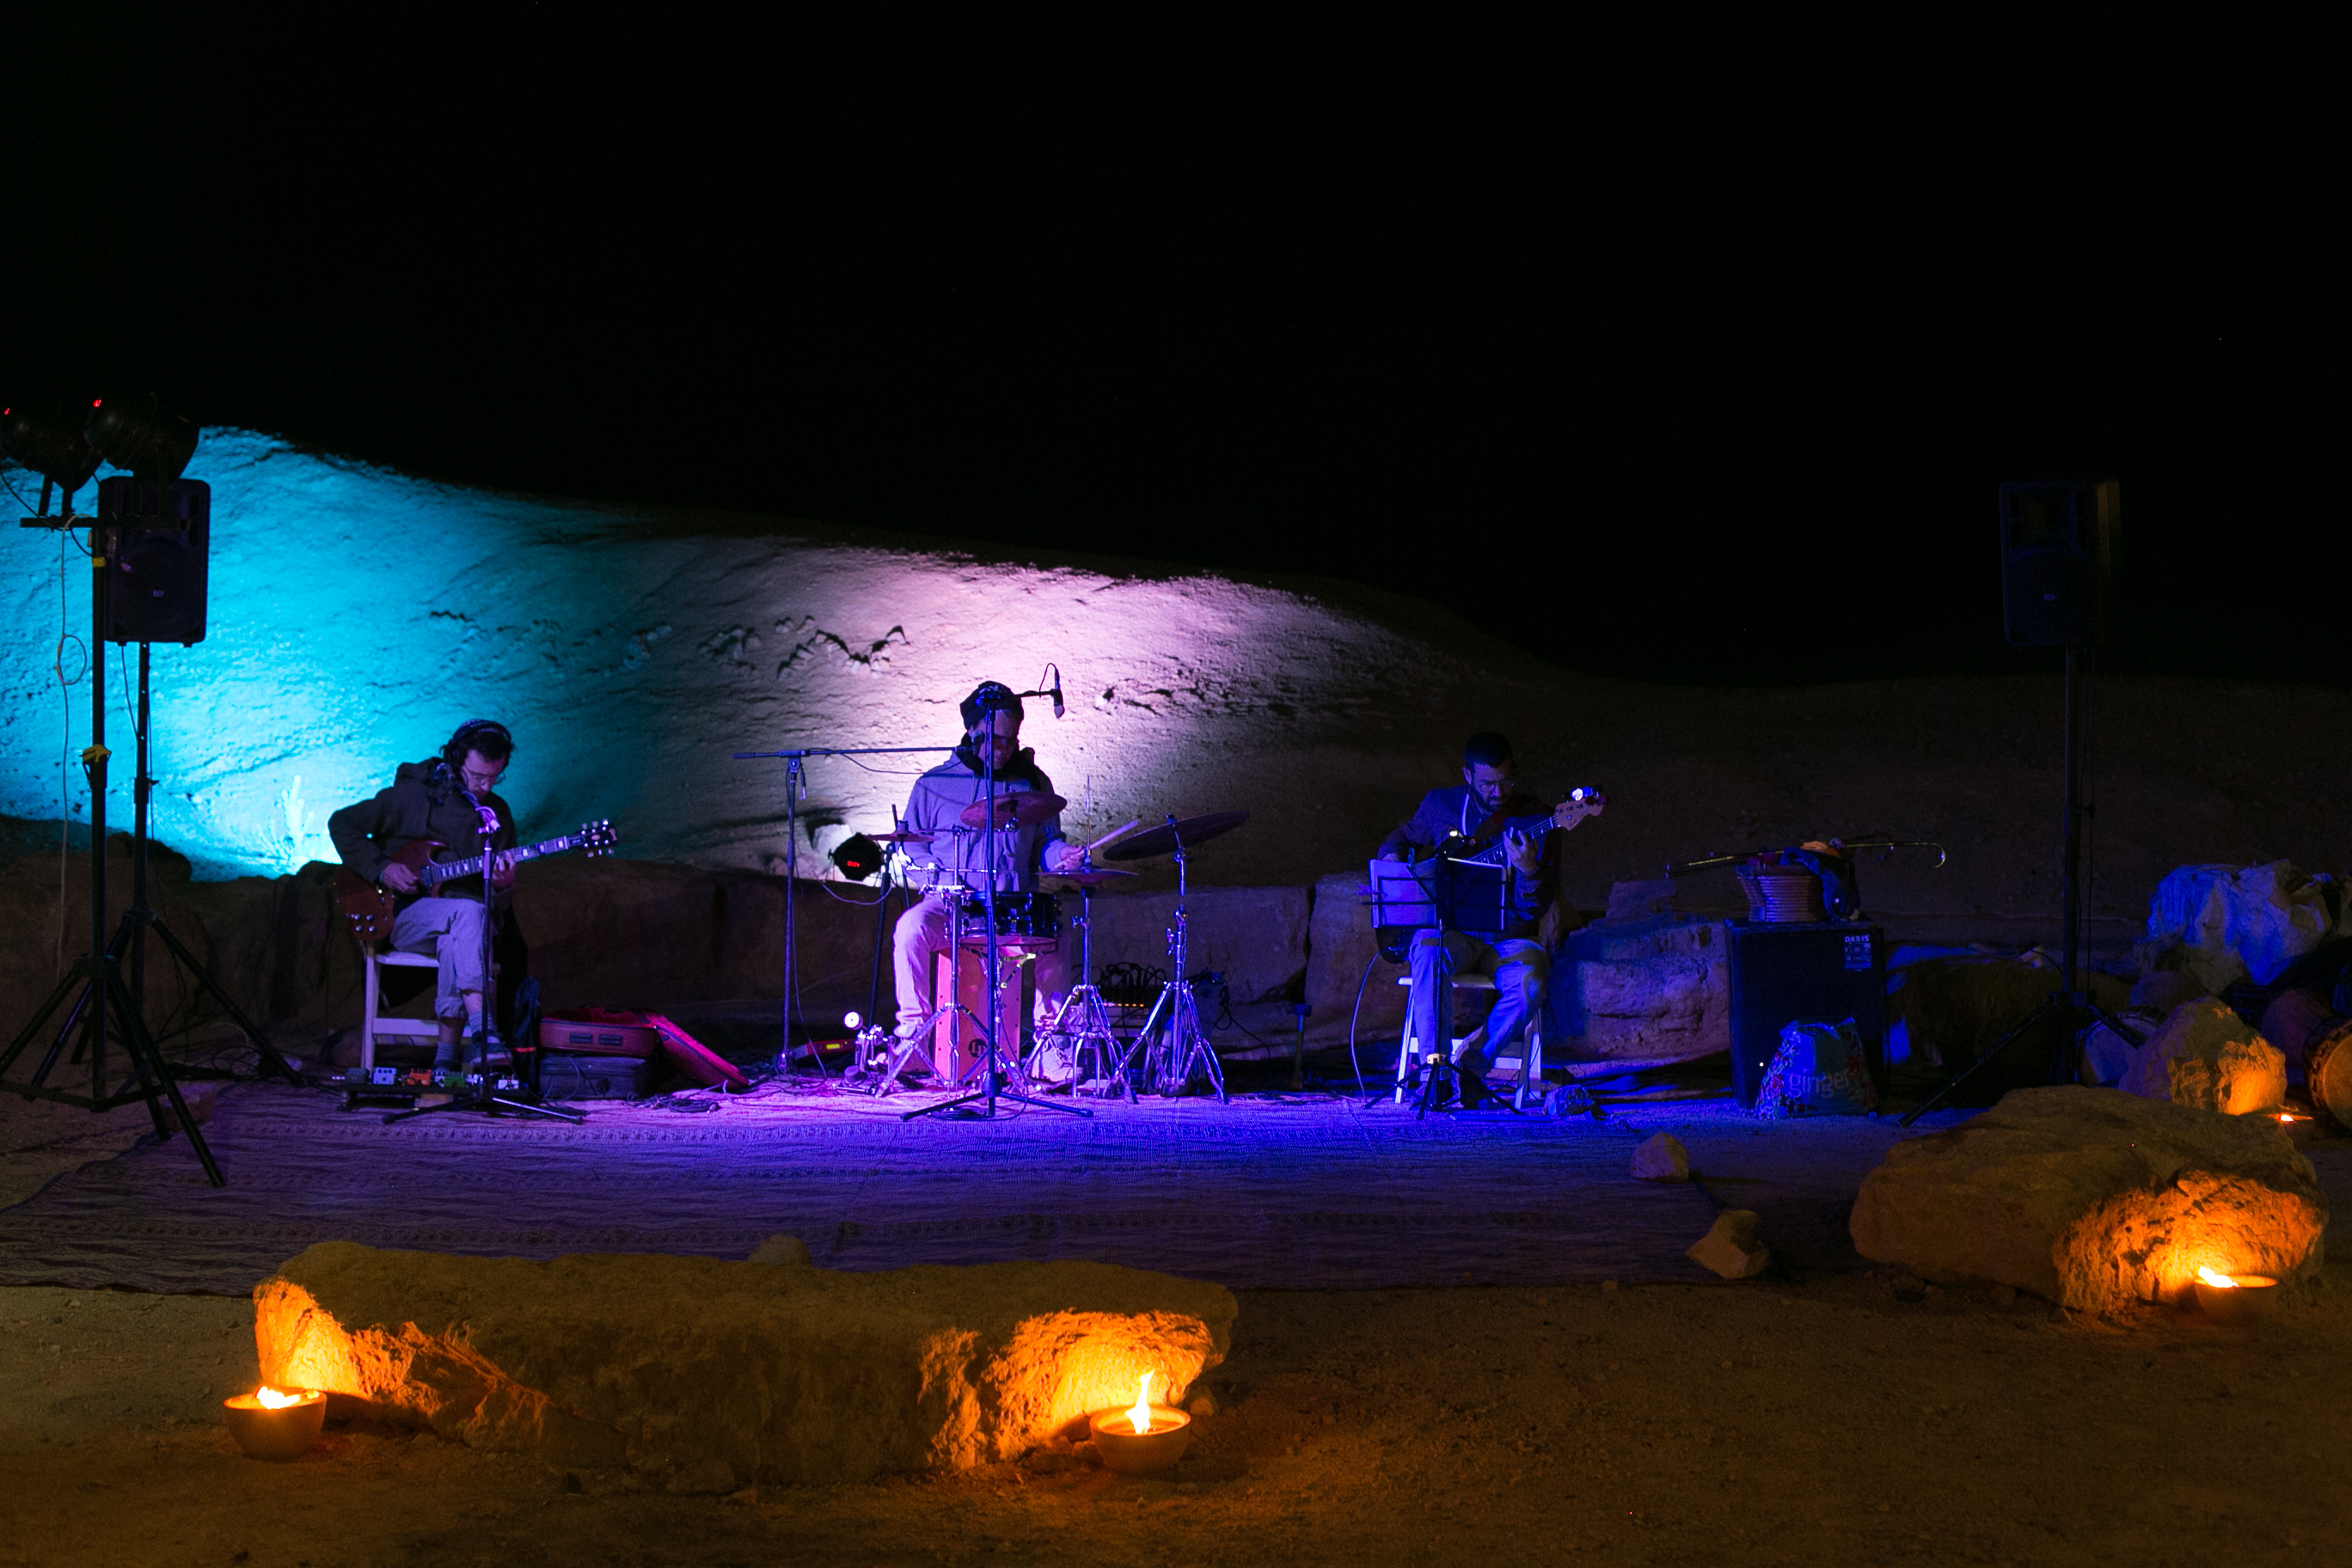 Desert party in Mitzpe Ramon